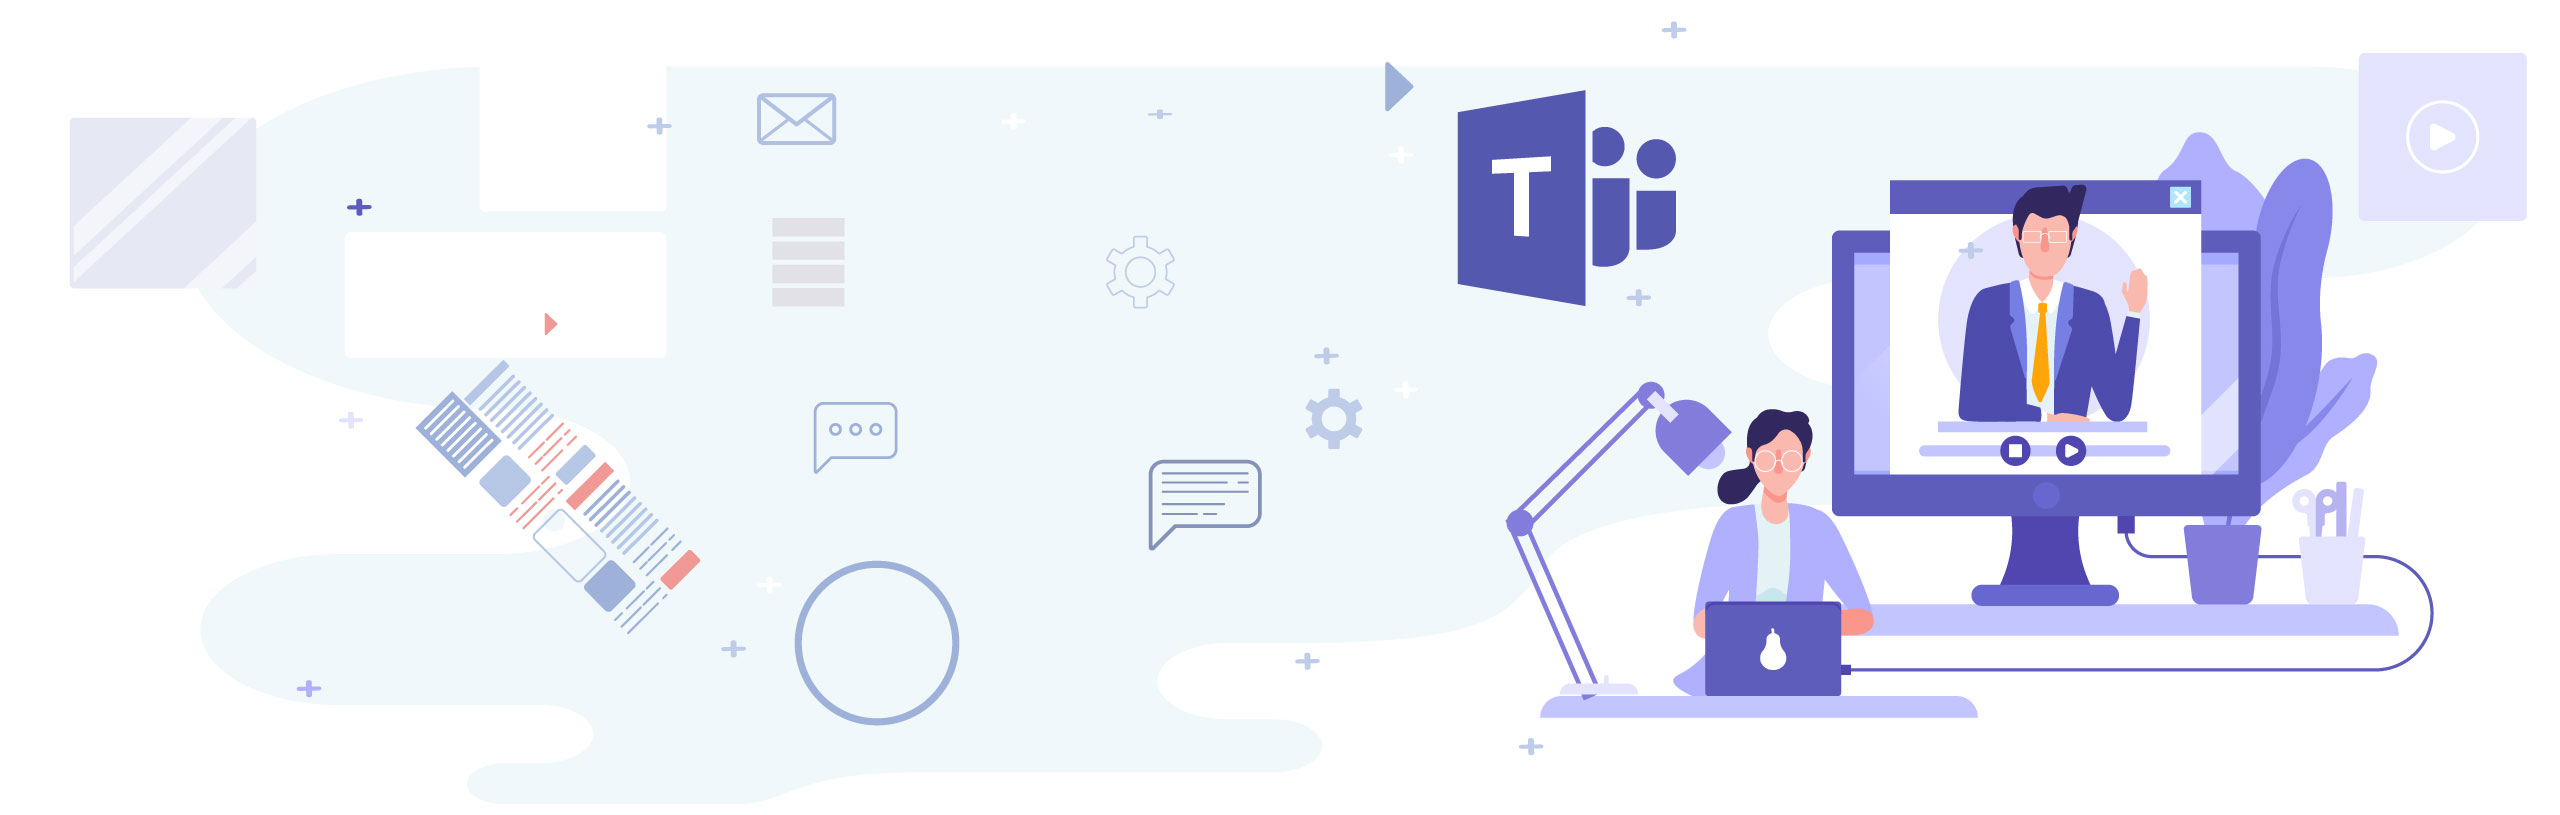 Implementación | Microsoft Teams